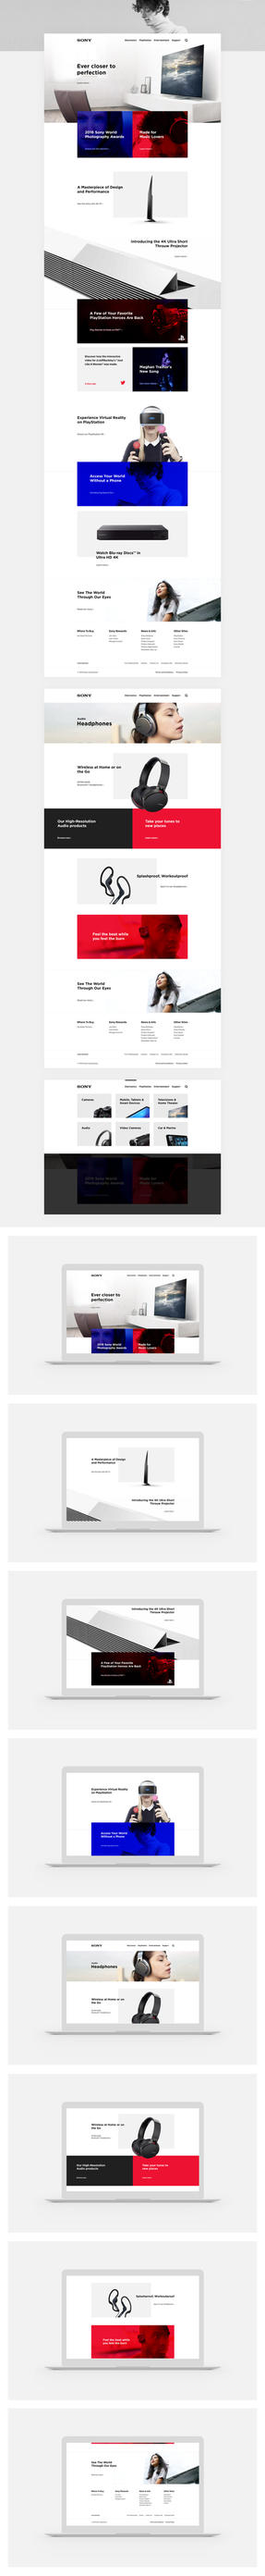 Sony Website Redesign Concept by SMHYLMZ